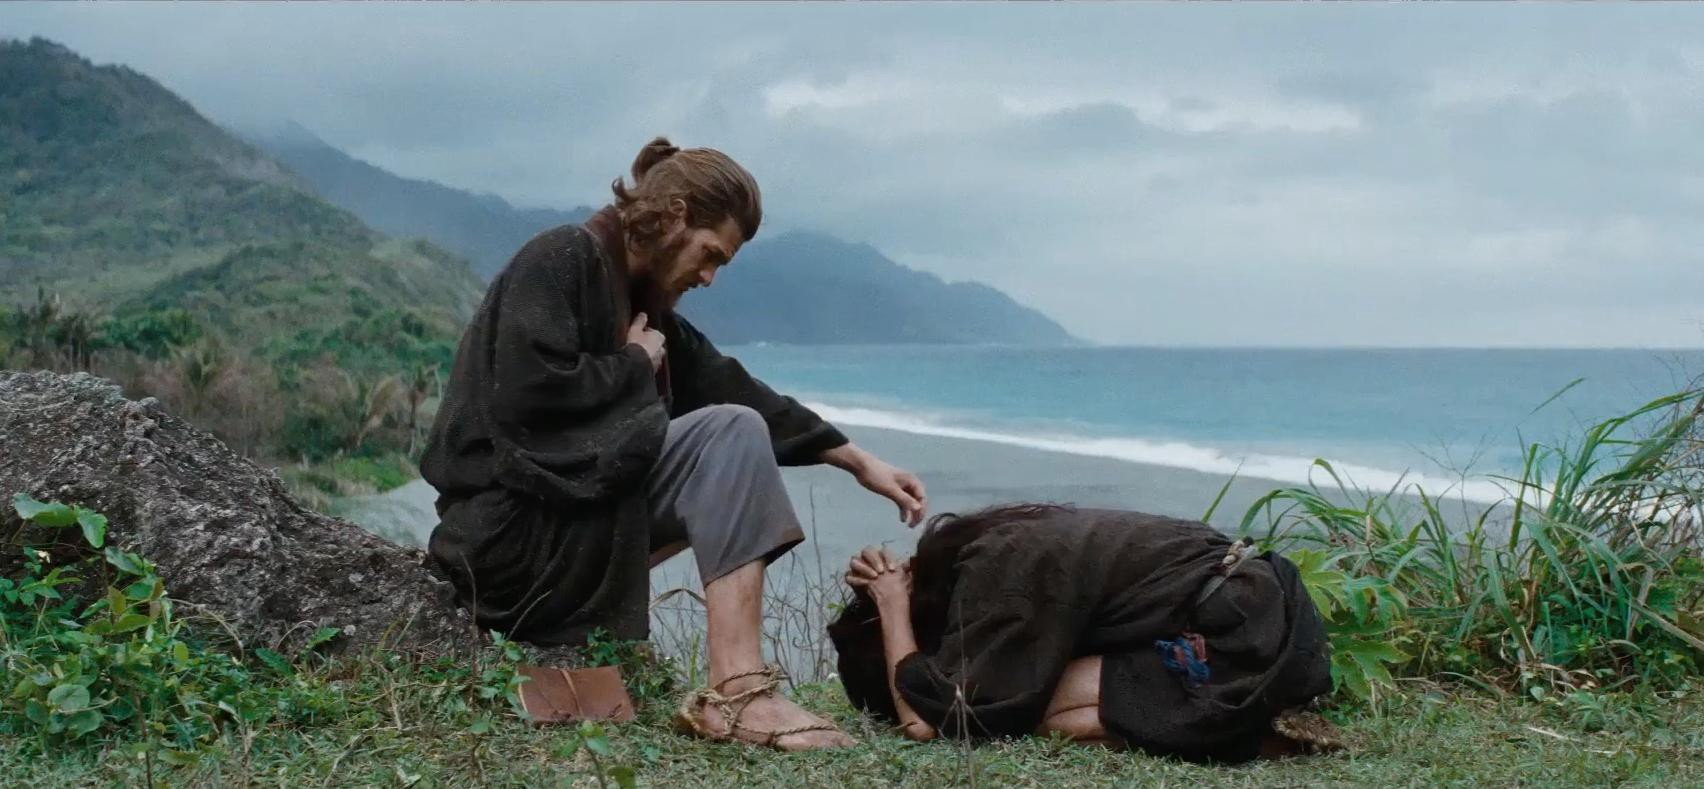 source: https://medium.com/panel-frame/martin-scorsese-would-like-us-to-see-silence-as-a-film-about-religion-but-its-central-issue-is-f3b785ea1bd7